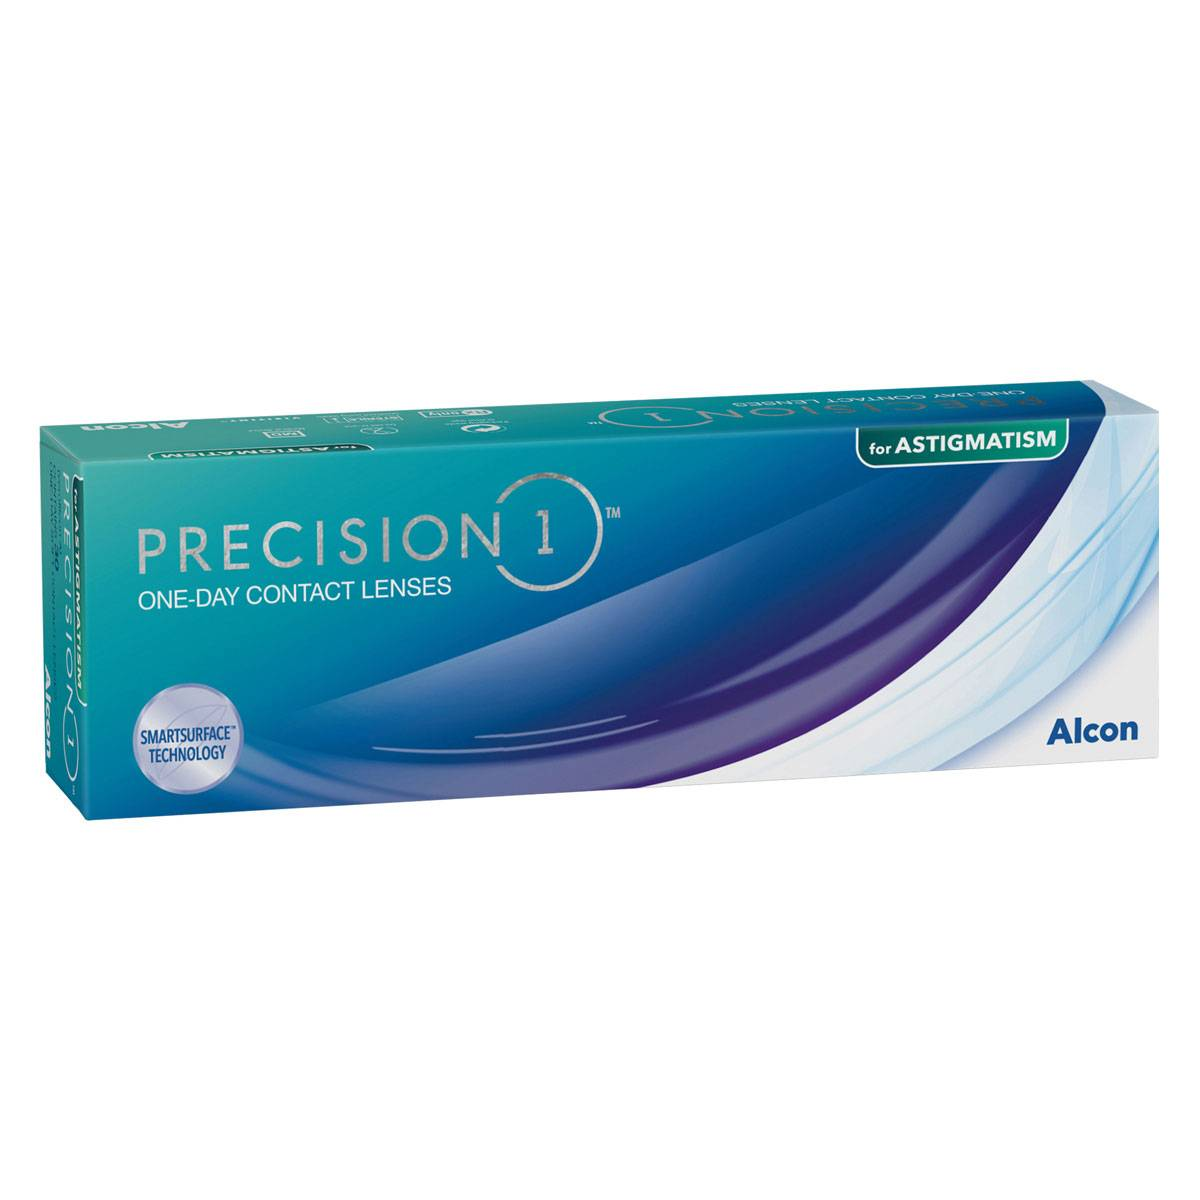 Alcon Precision 1 for Astigmatism (30 Contact Lenses), Alcon, Toric Daily Disposables, Silicone Hydrogel